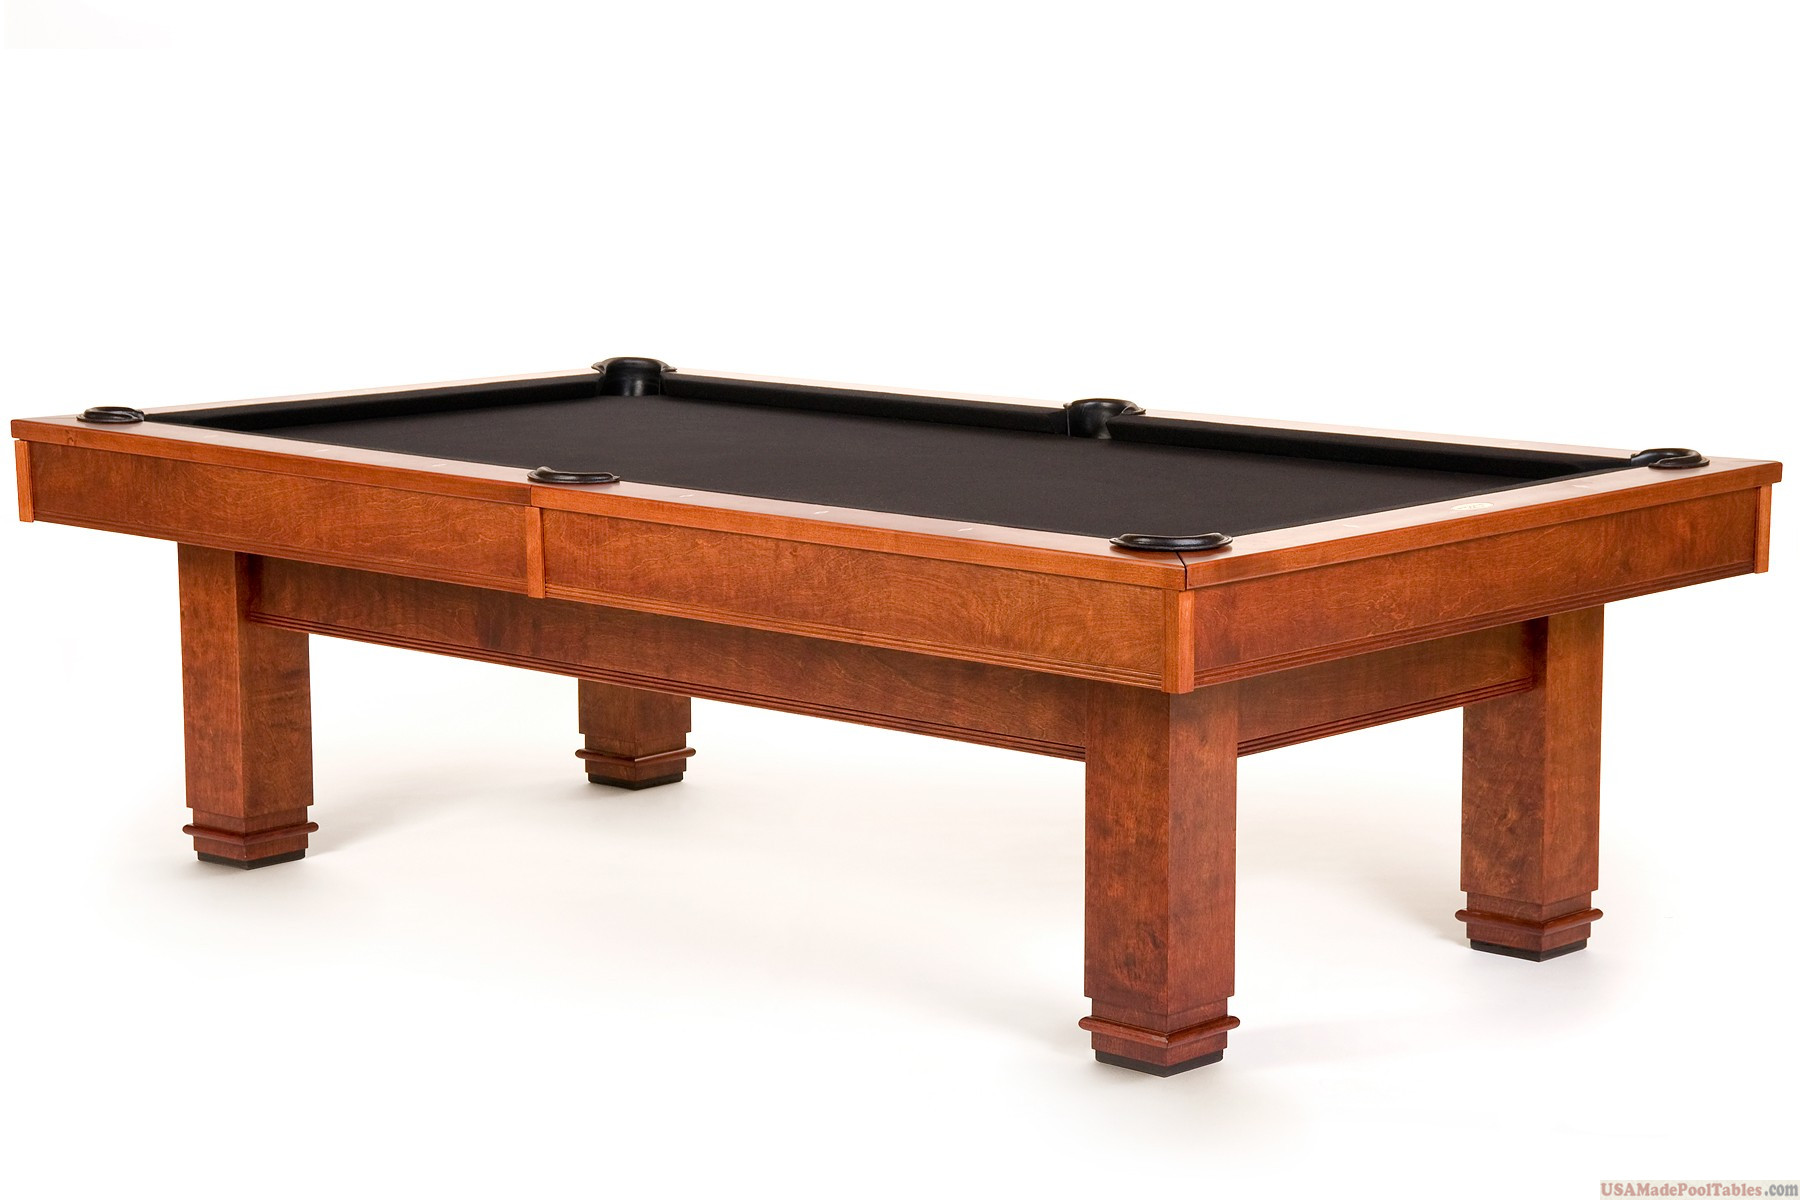 CLIMAX POOL TABLE AVAILABLE IN ANY STAIN FINISH